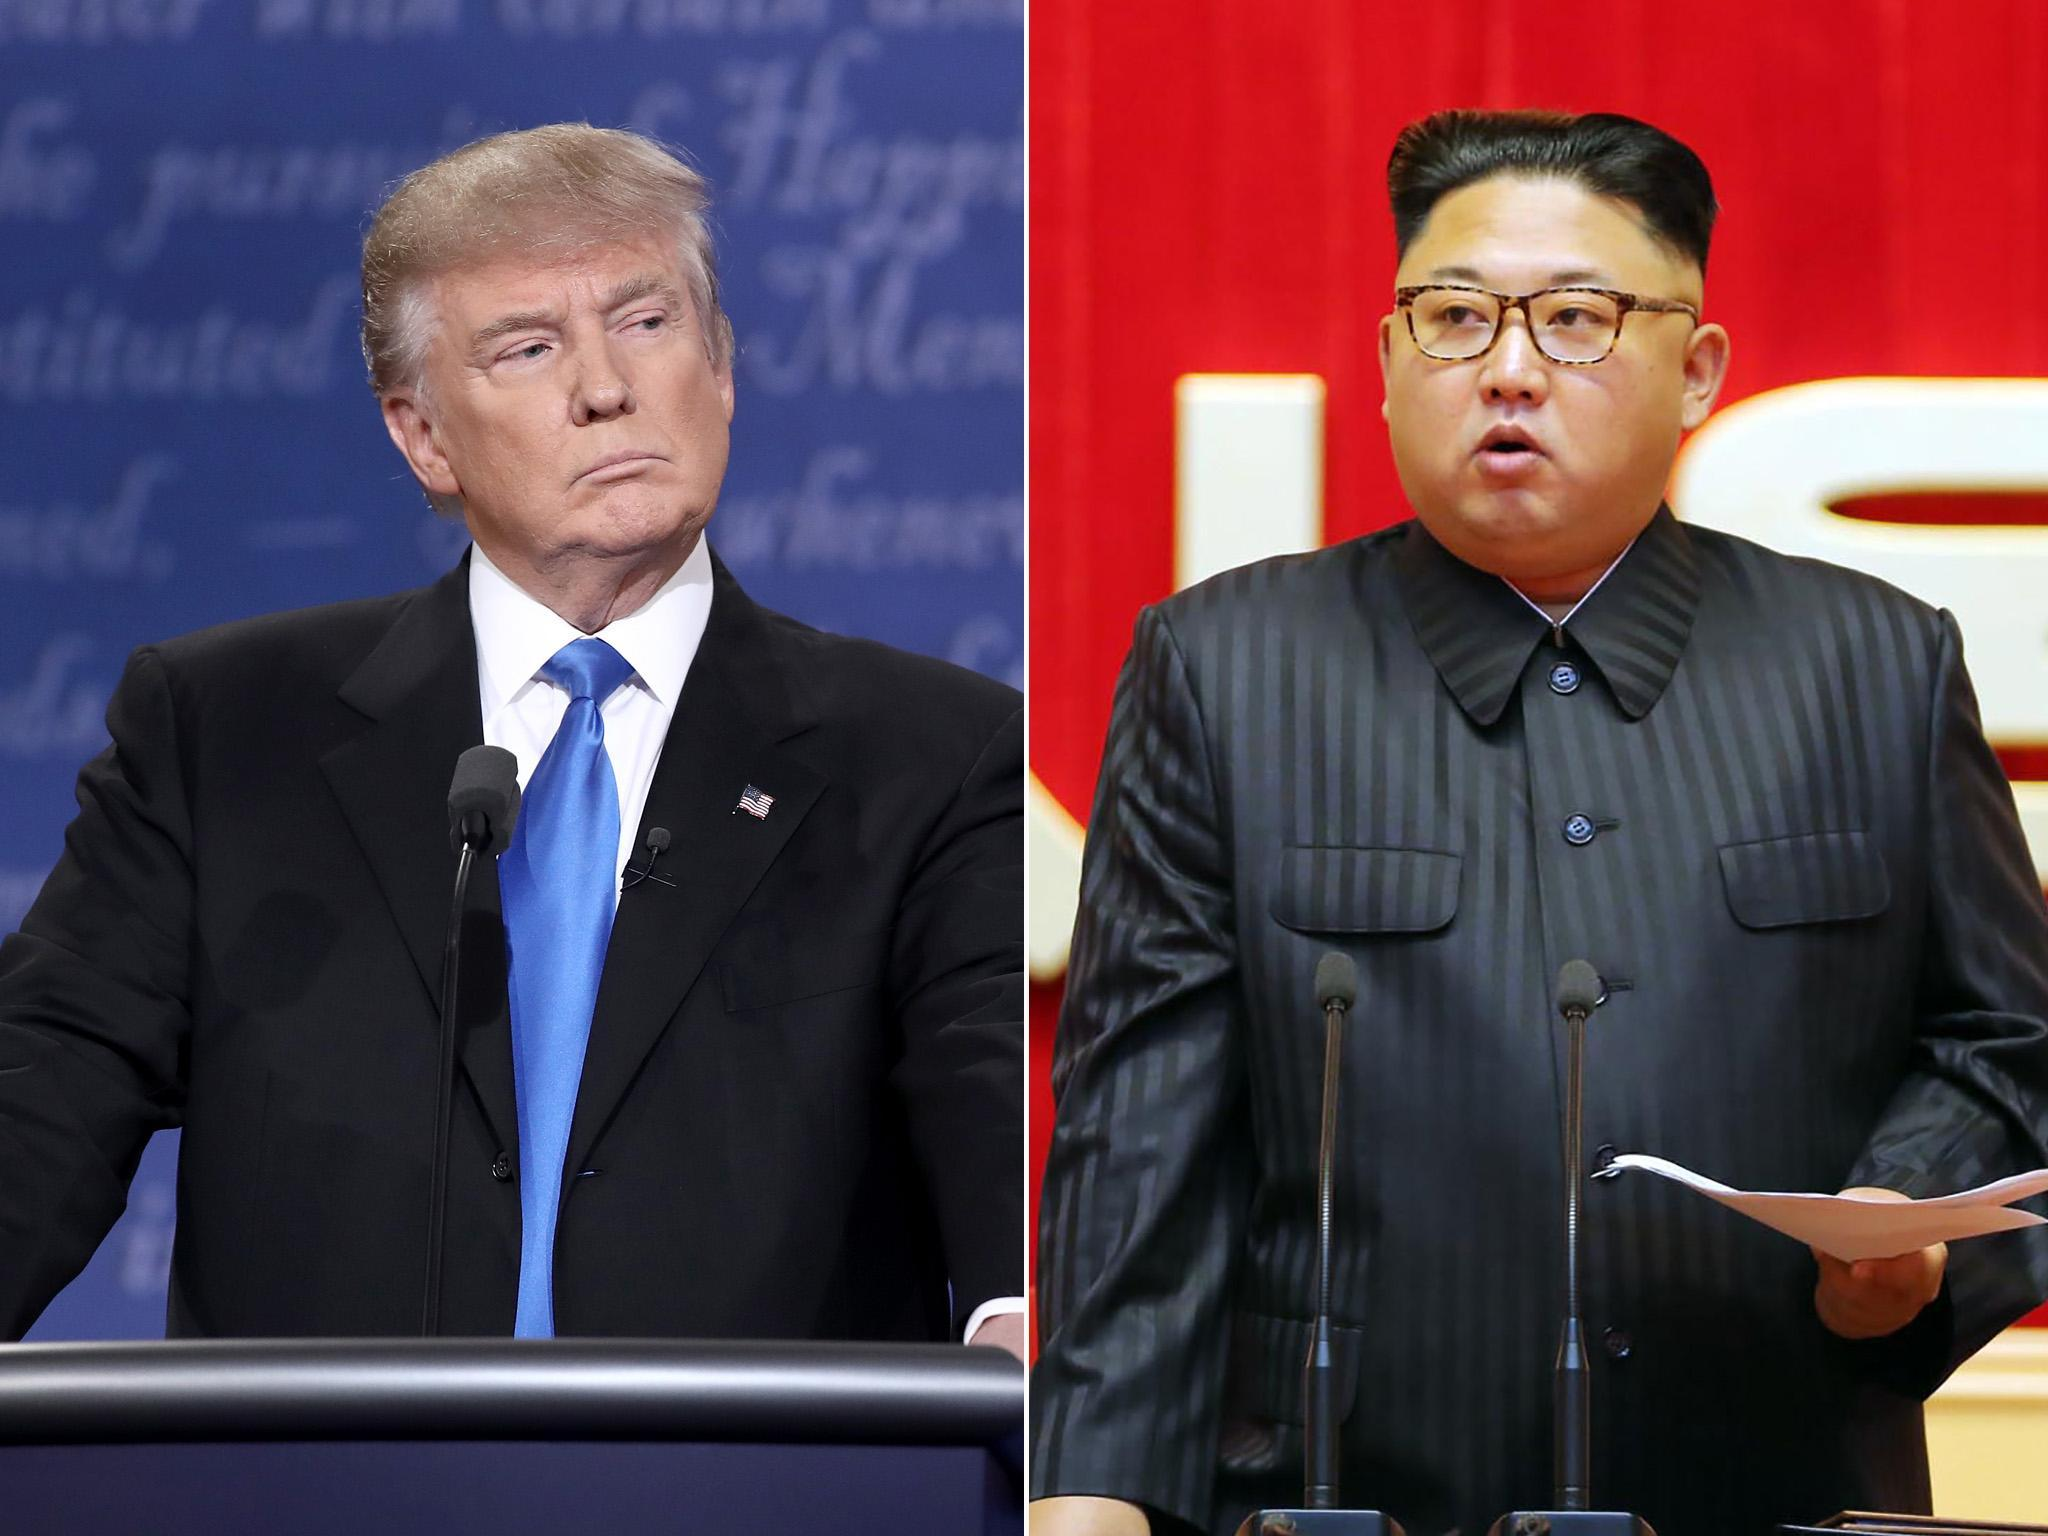 When Will Donald Trump And Kim Jong Un Meet And What Will They